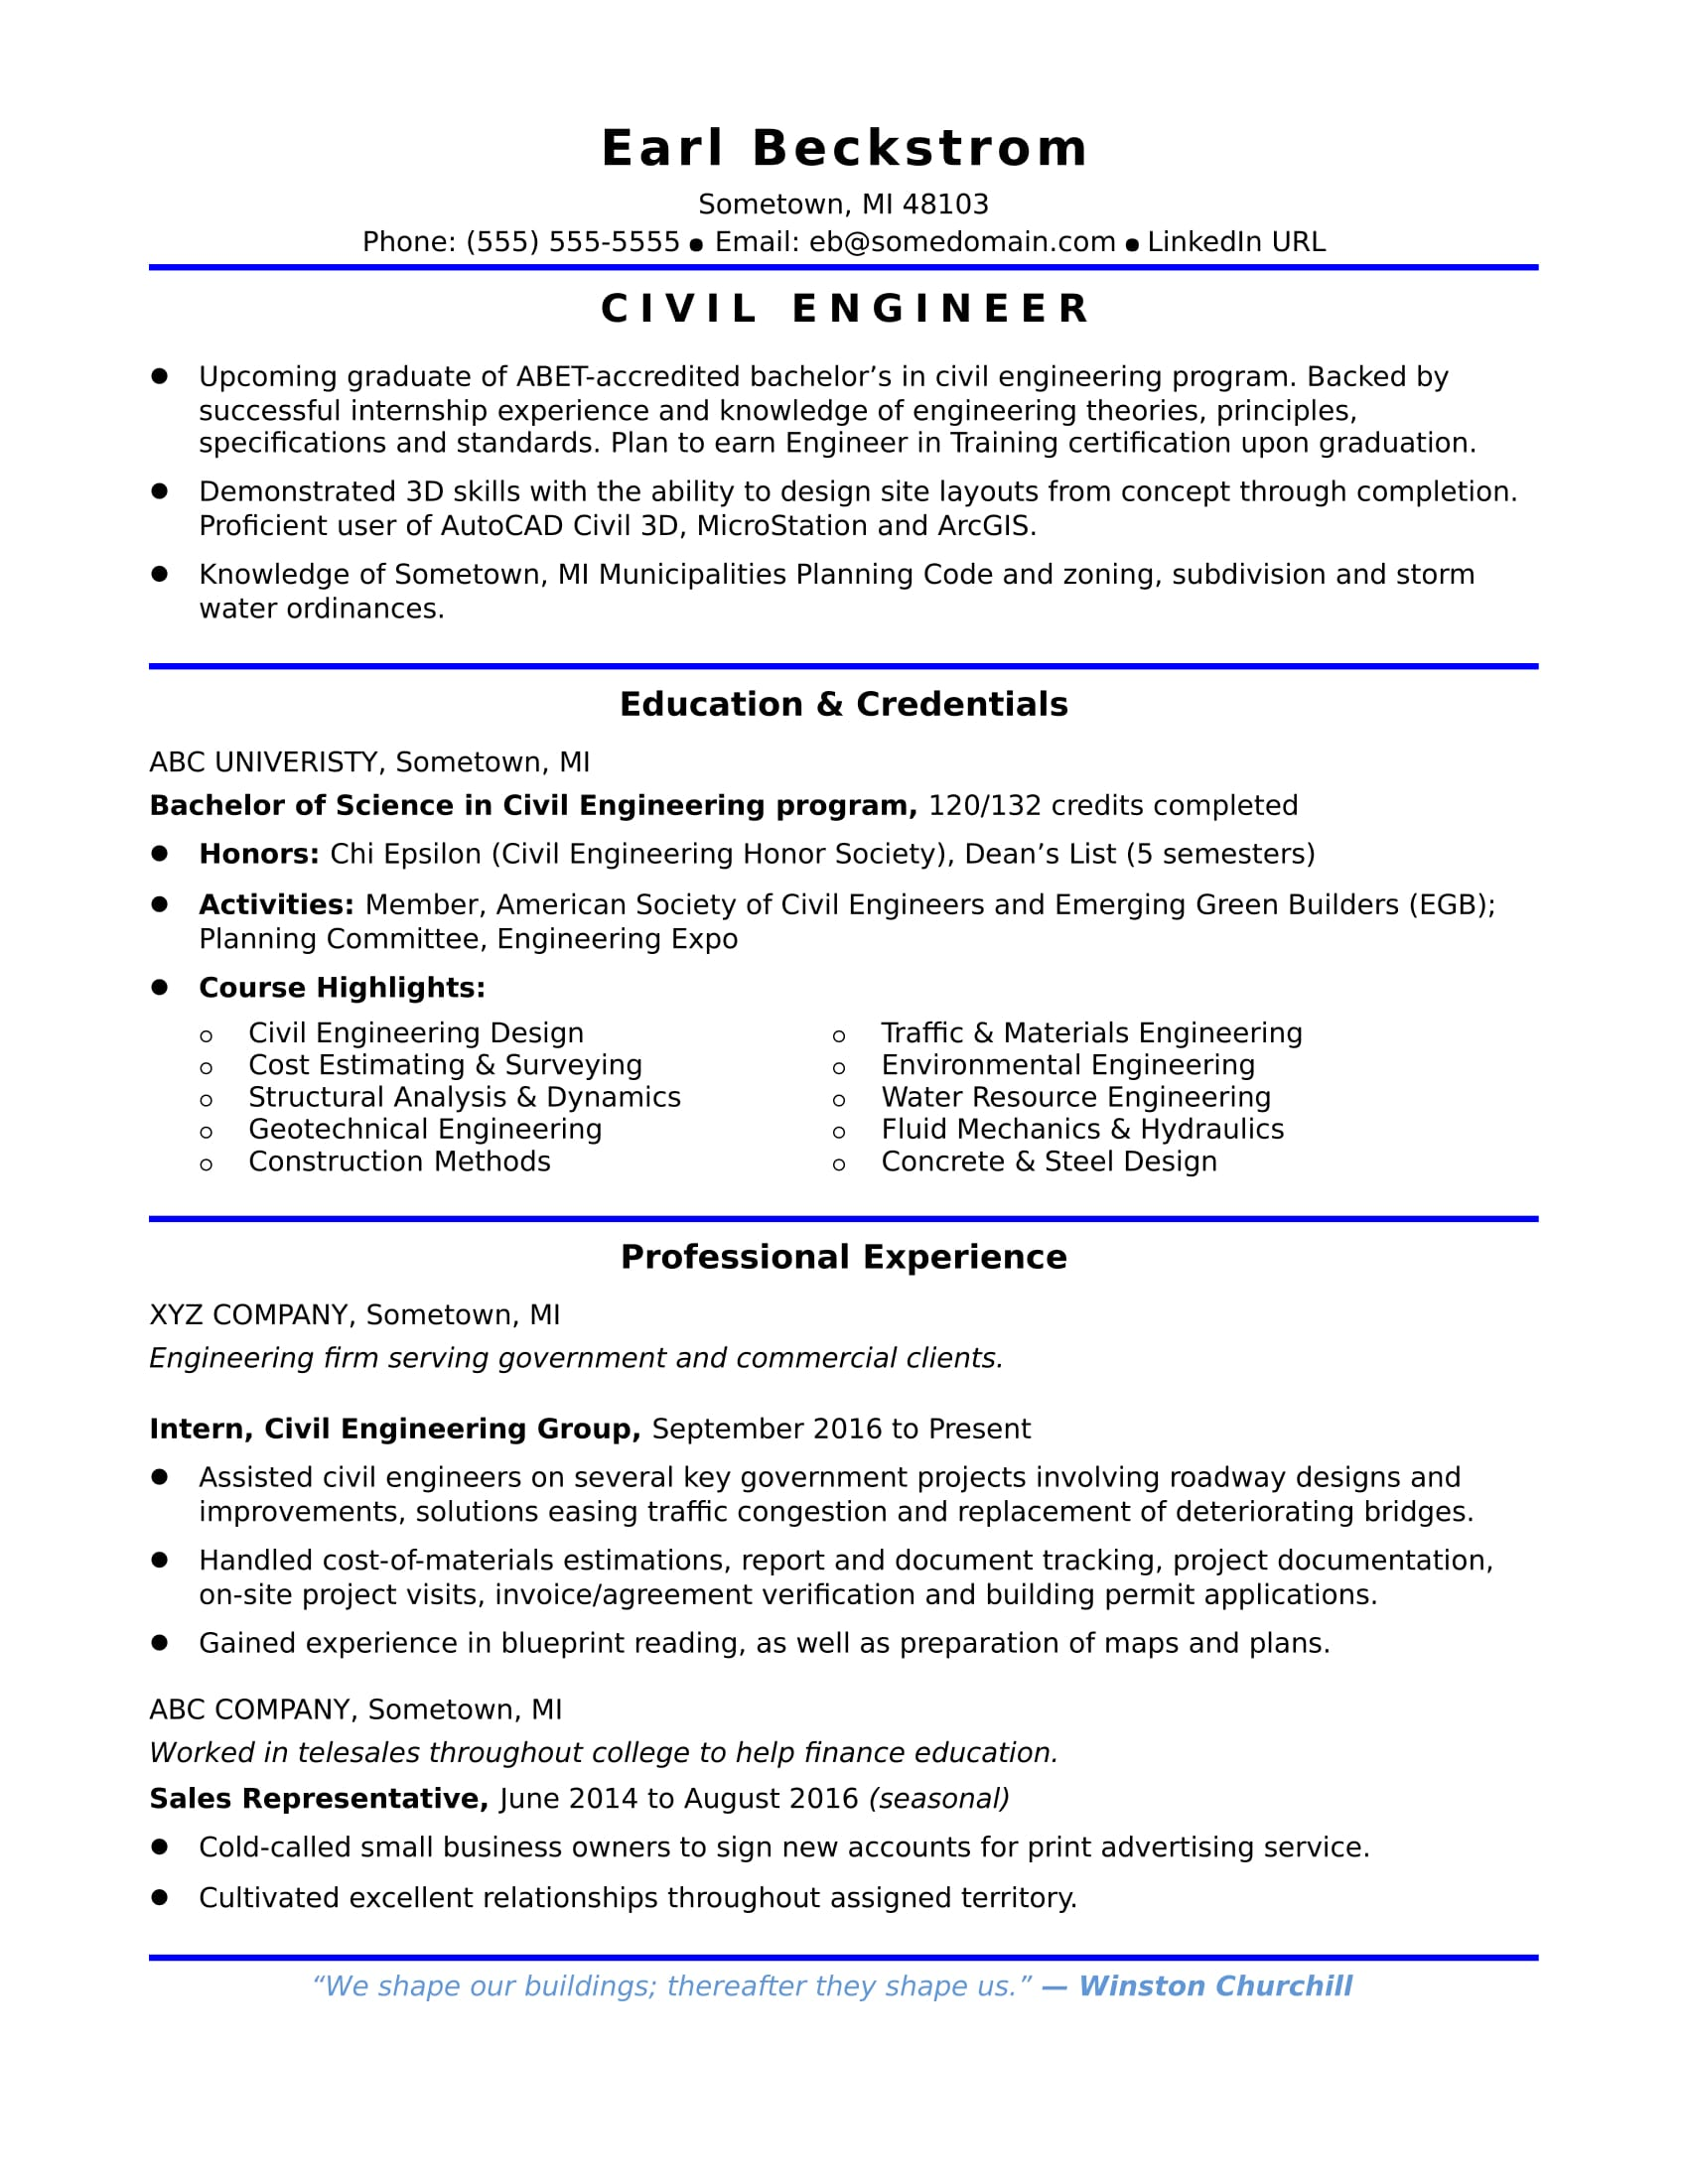 Examples For A Resume | Sample Resume For An Entry Level Civil Engineer Monster Com